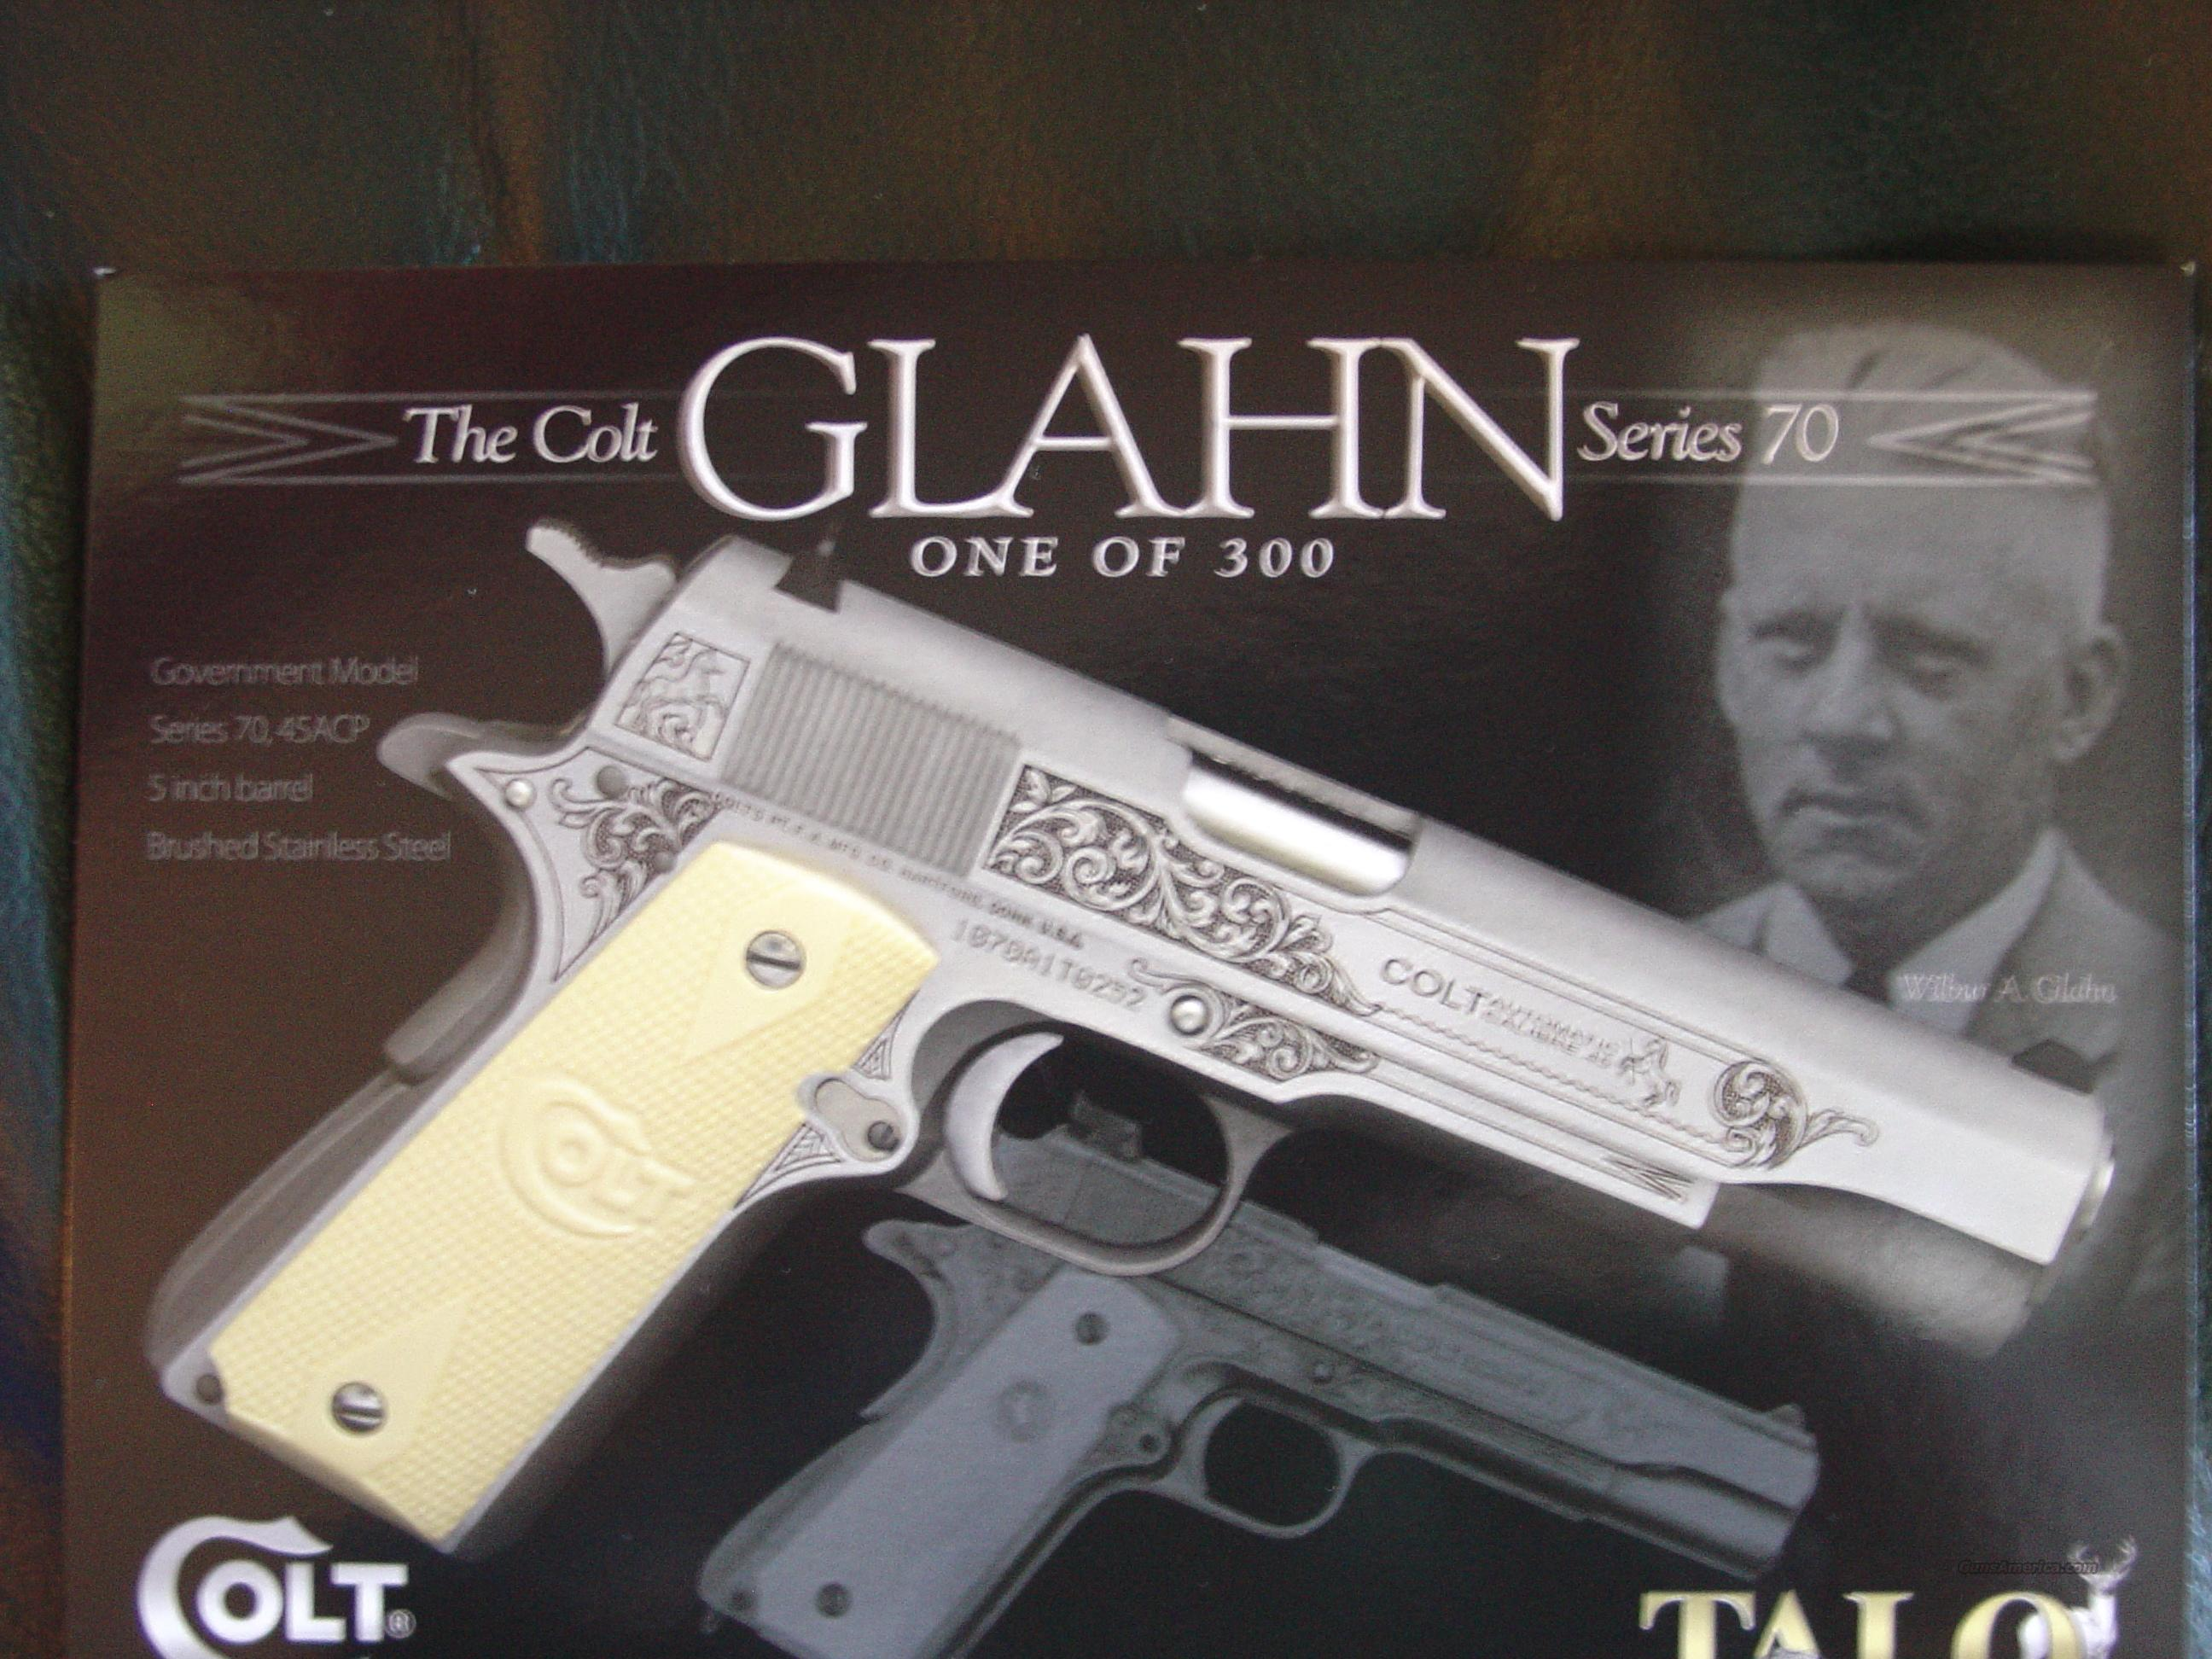 Colt 1911 government series 70,one of 300,Talo edition,engraved,satin & brushed stainless,45acp,Wilbur Glahn colt factory engraver-commemorative,new in box with all papers-super nice !!  Guns > Pistols > Colt Commemorative Pistols